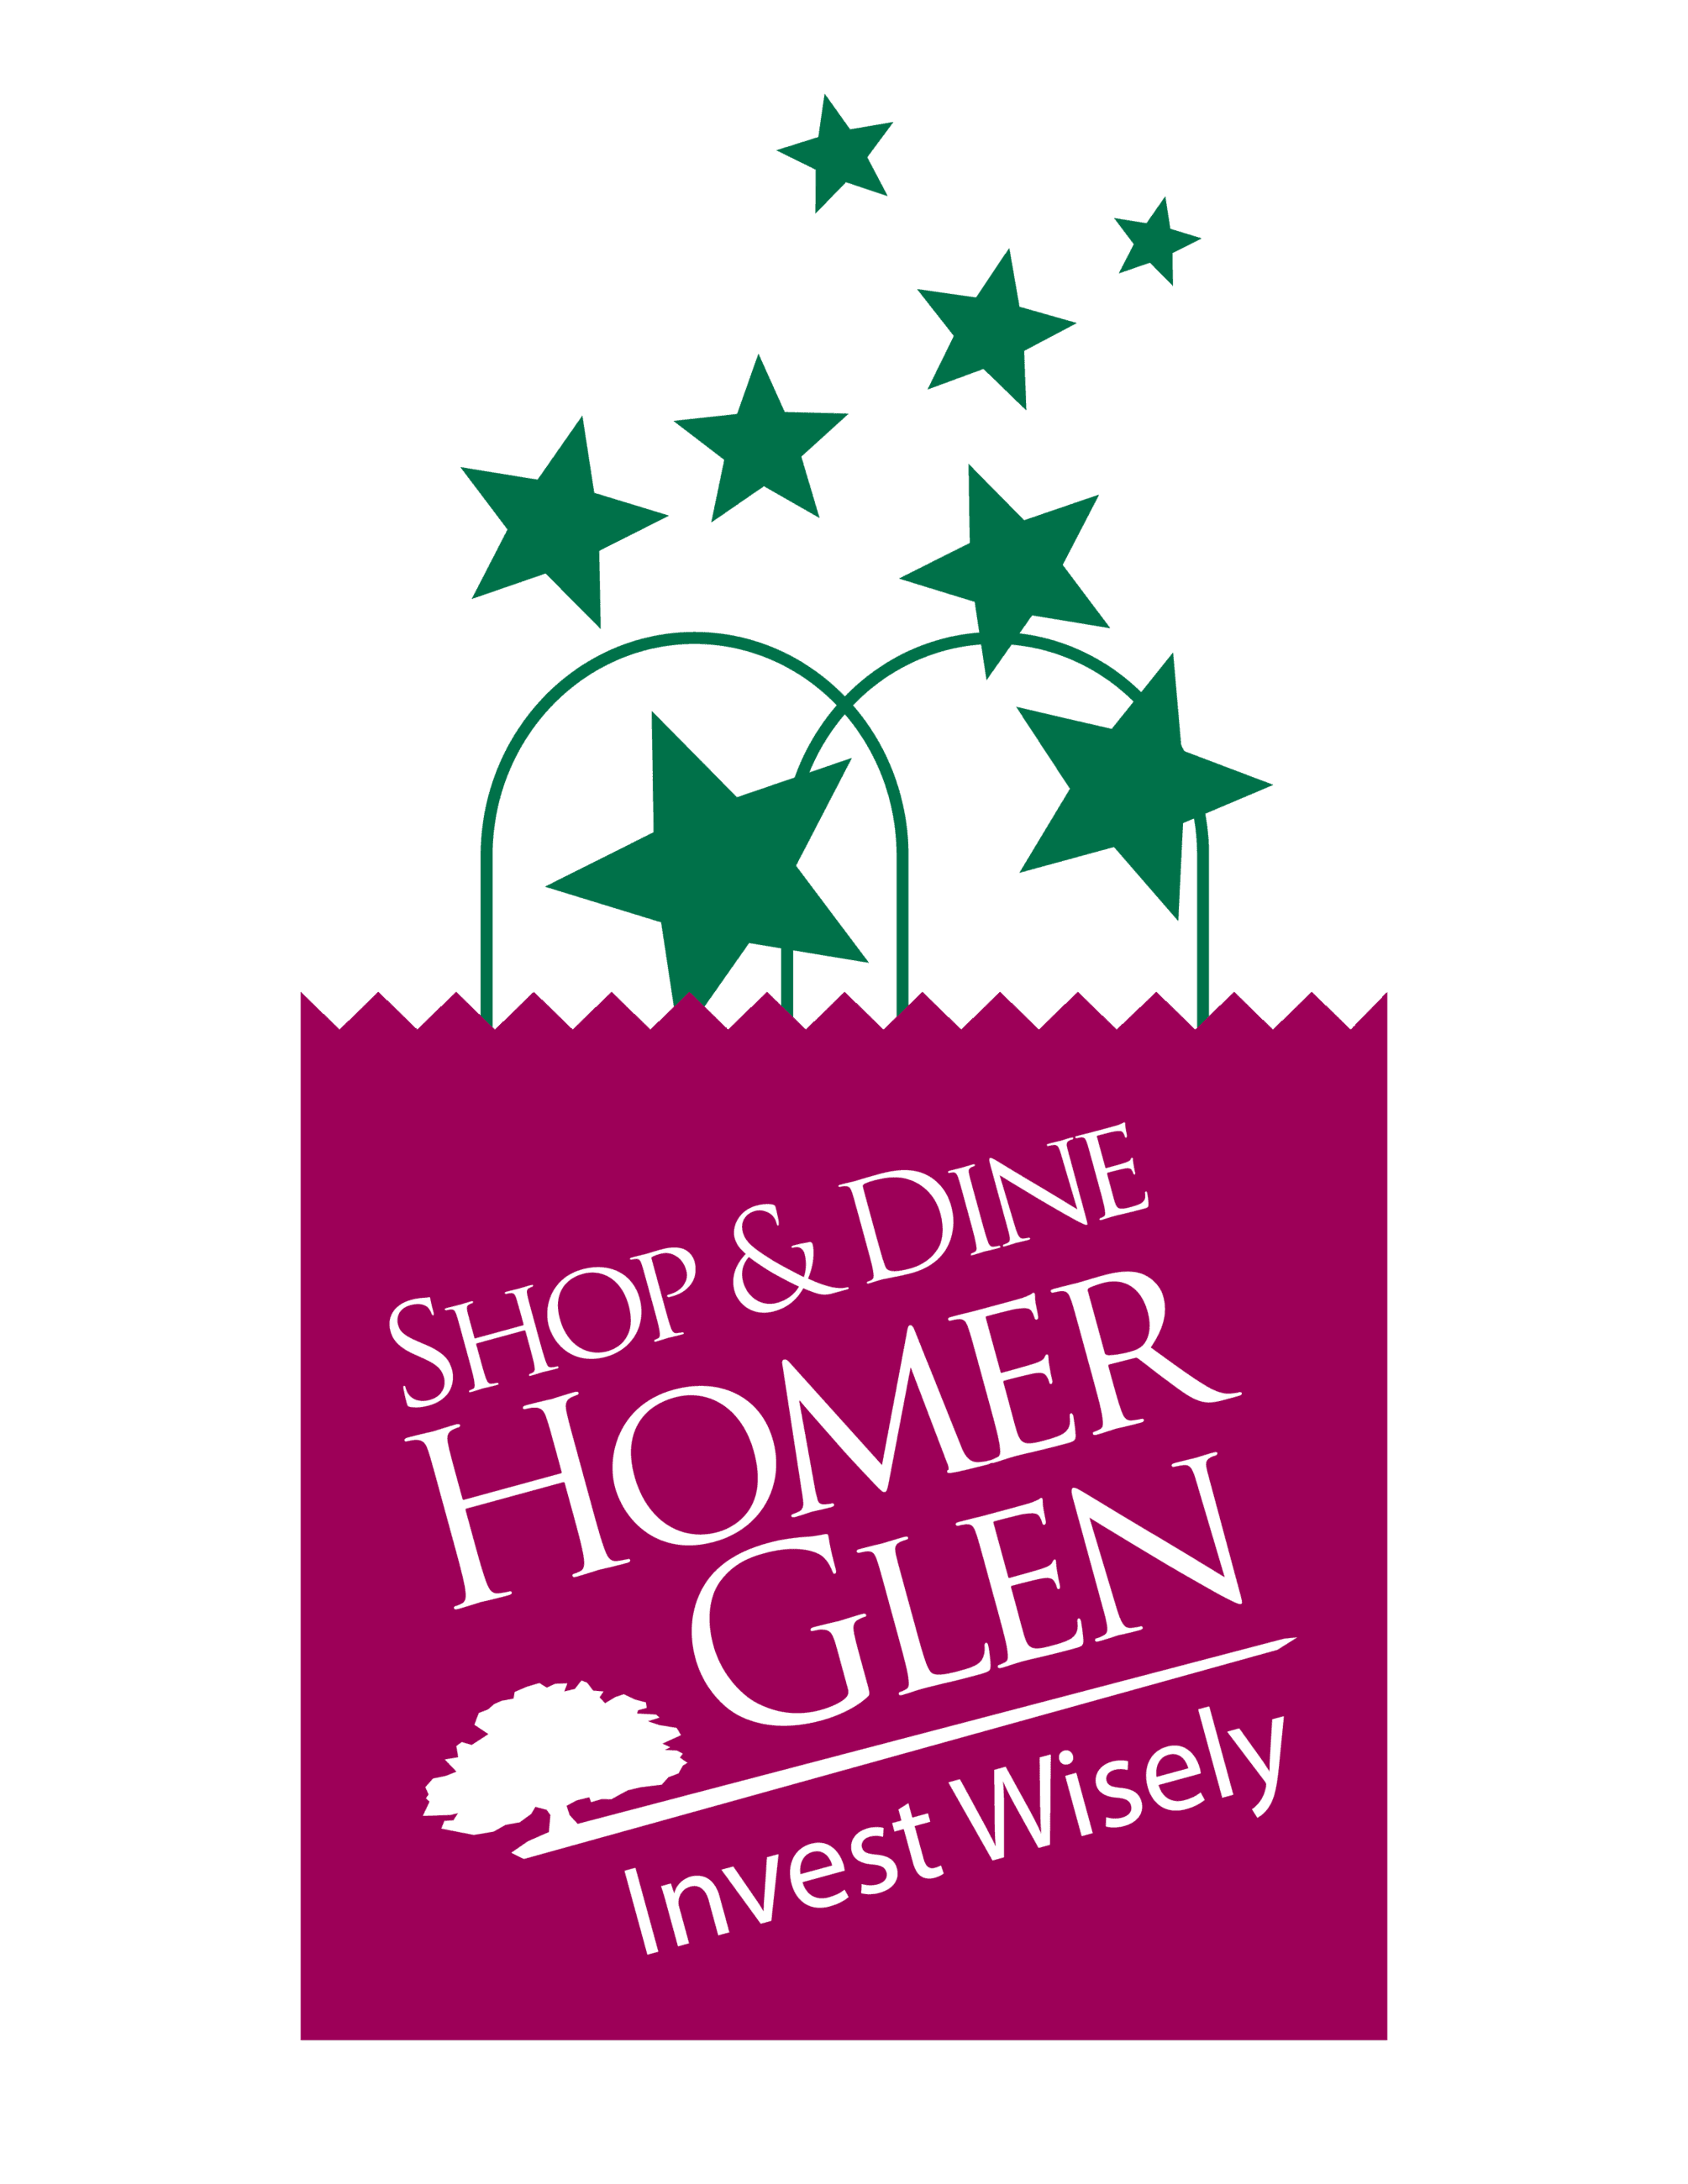 Shop and Dine HG Logo